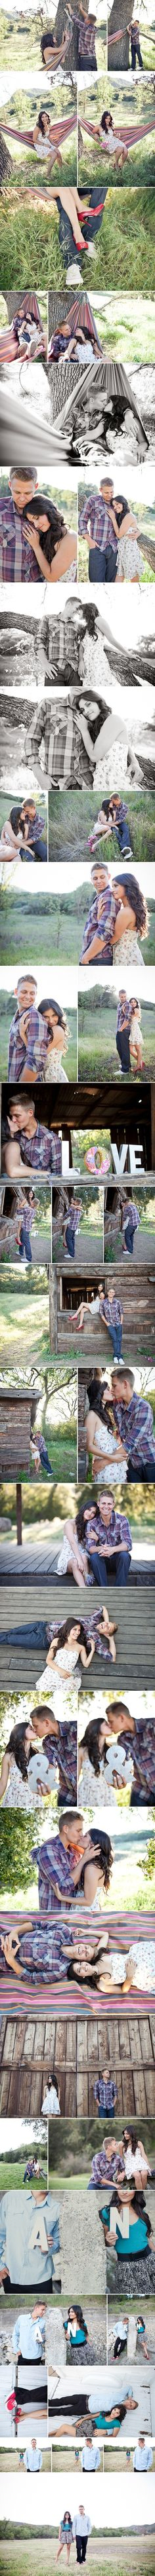 Really cute couples poses